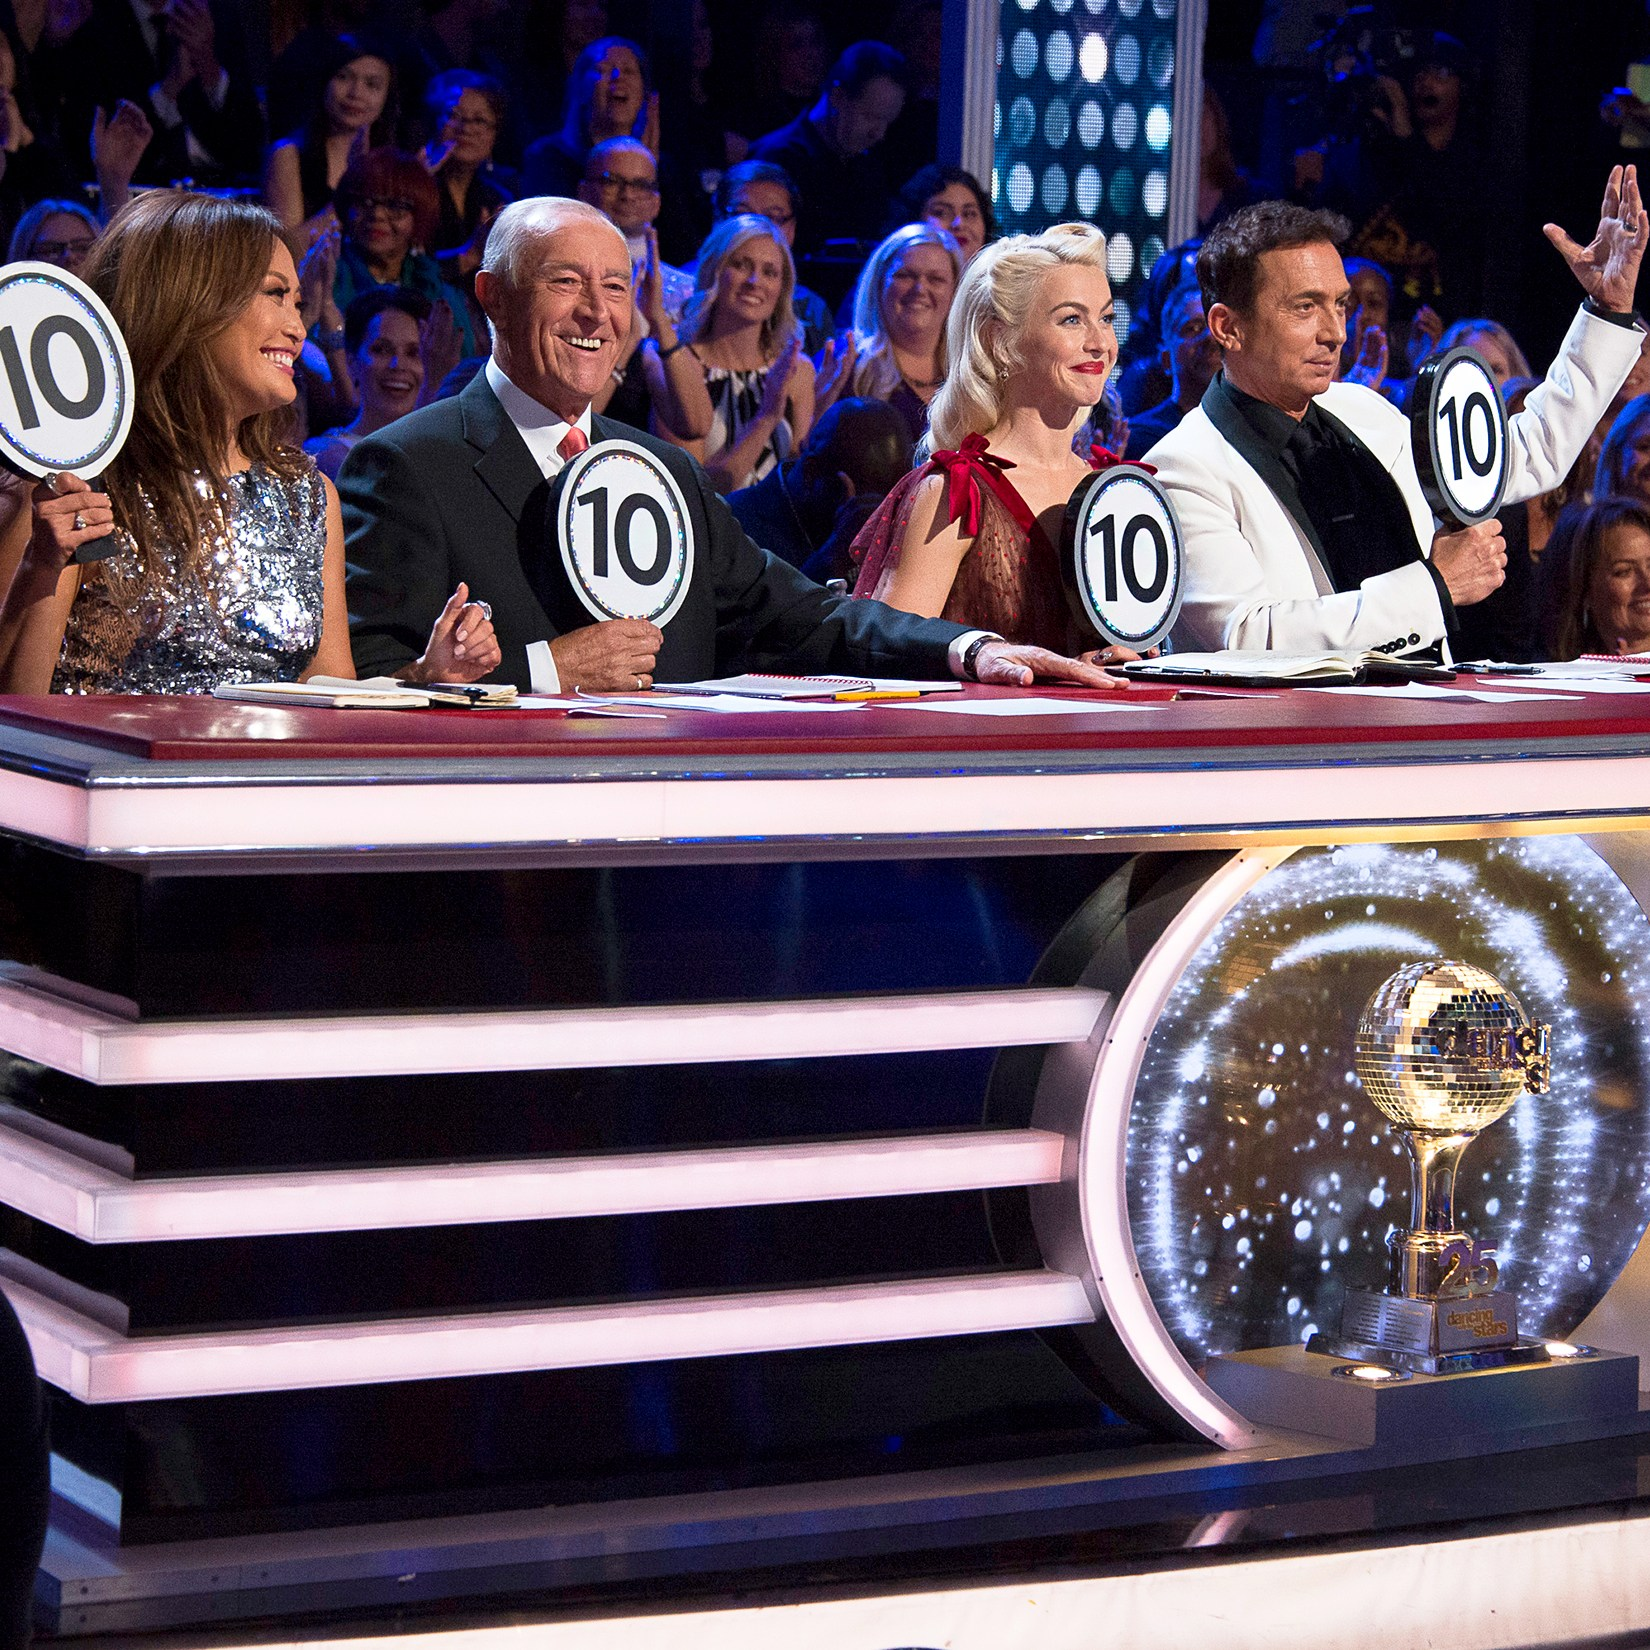 'Dancing With The Stars' judges Carrie Ann Inaba, Len Goodman, Julianne Hough and Bruno Tonioli